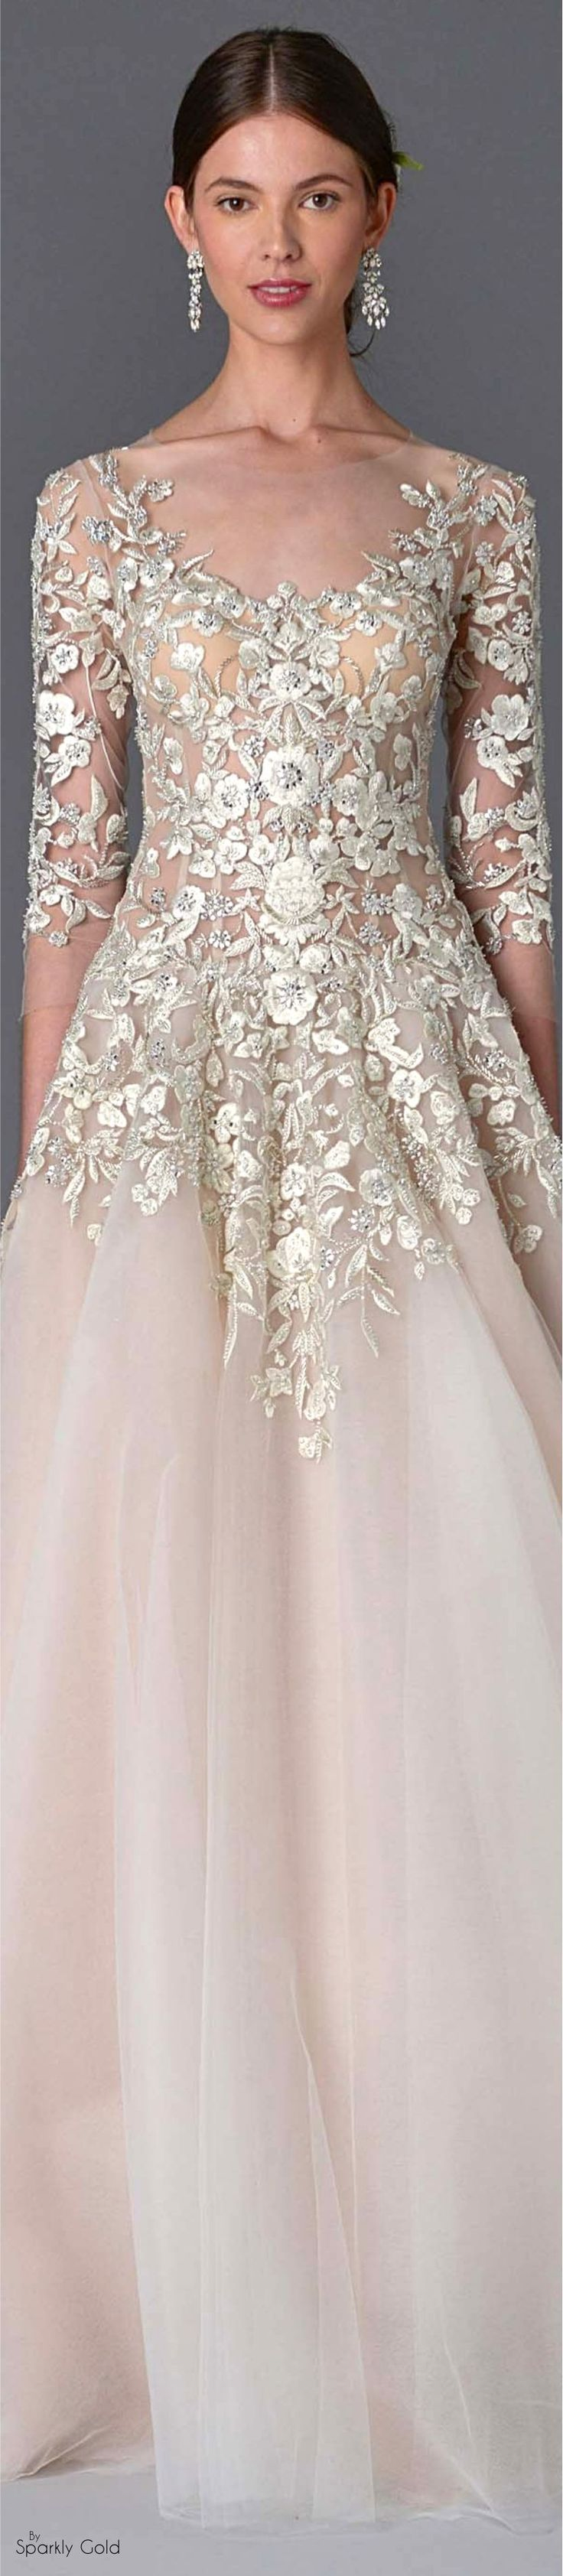 Marchesa Spring 2017 Bridal                                                                                                                                                                                 More